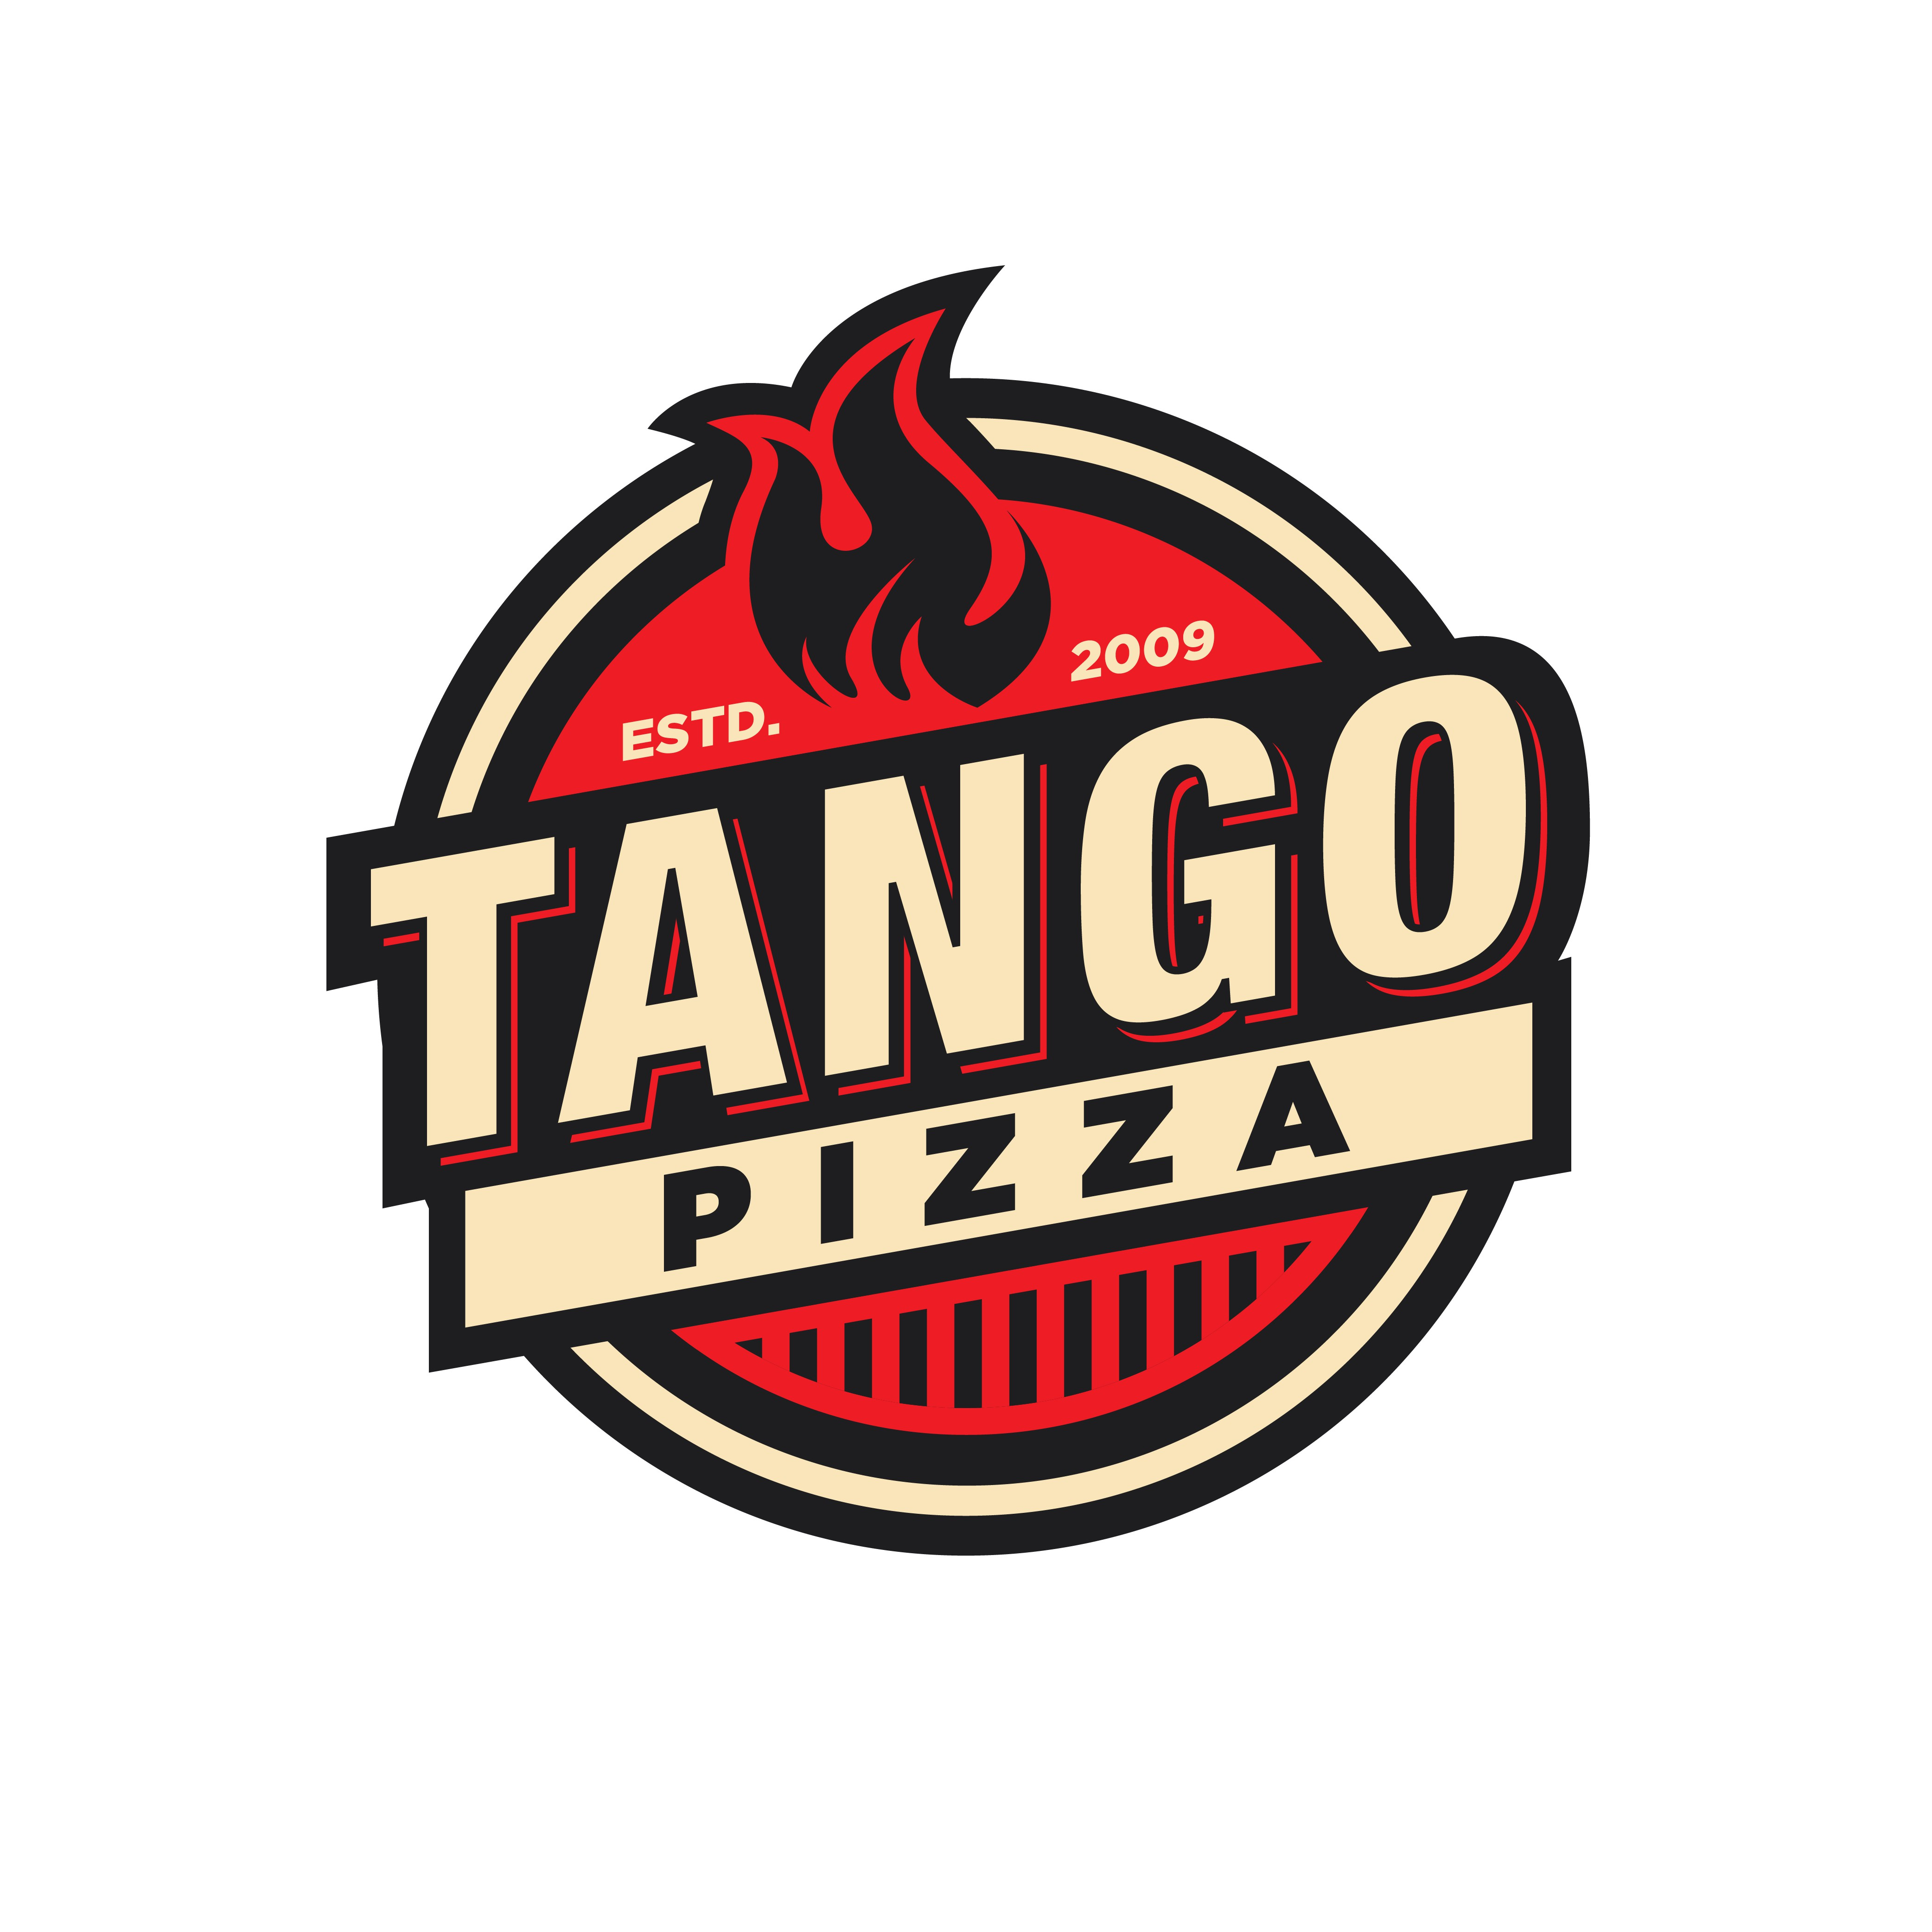 Tango Pizza - Text Revision